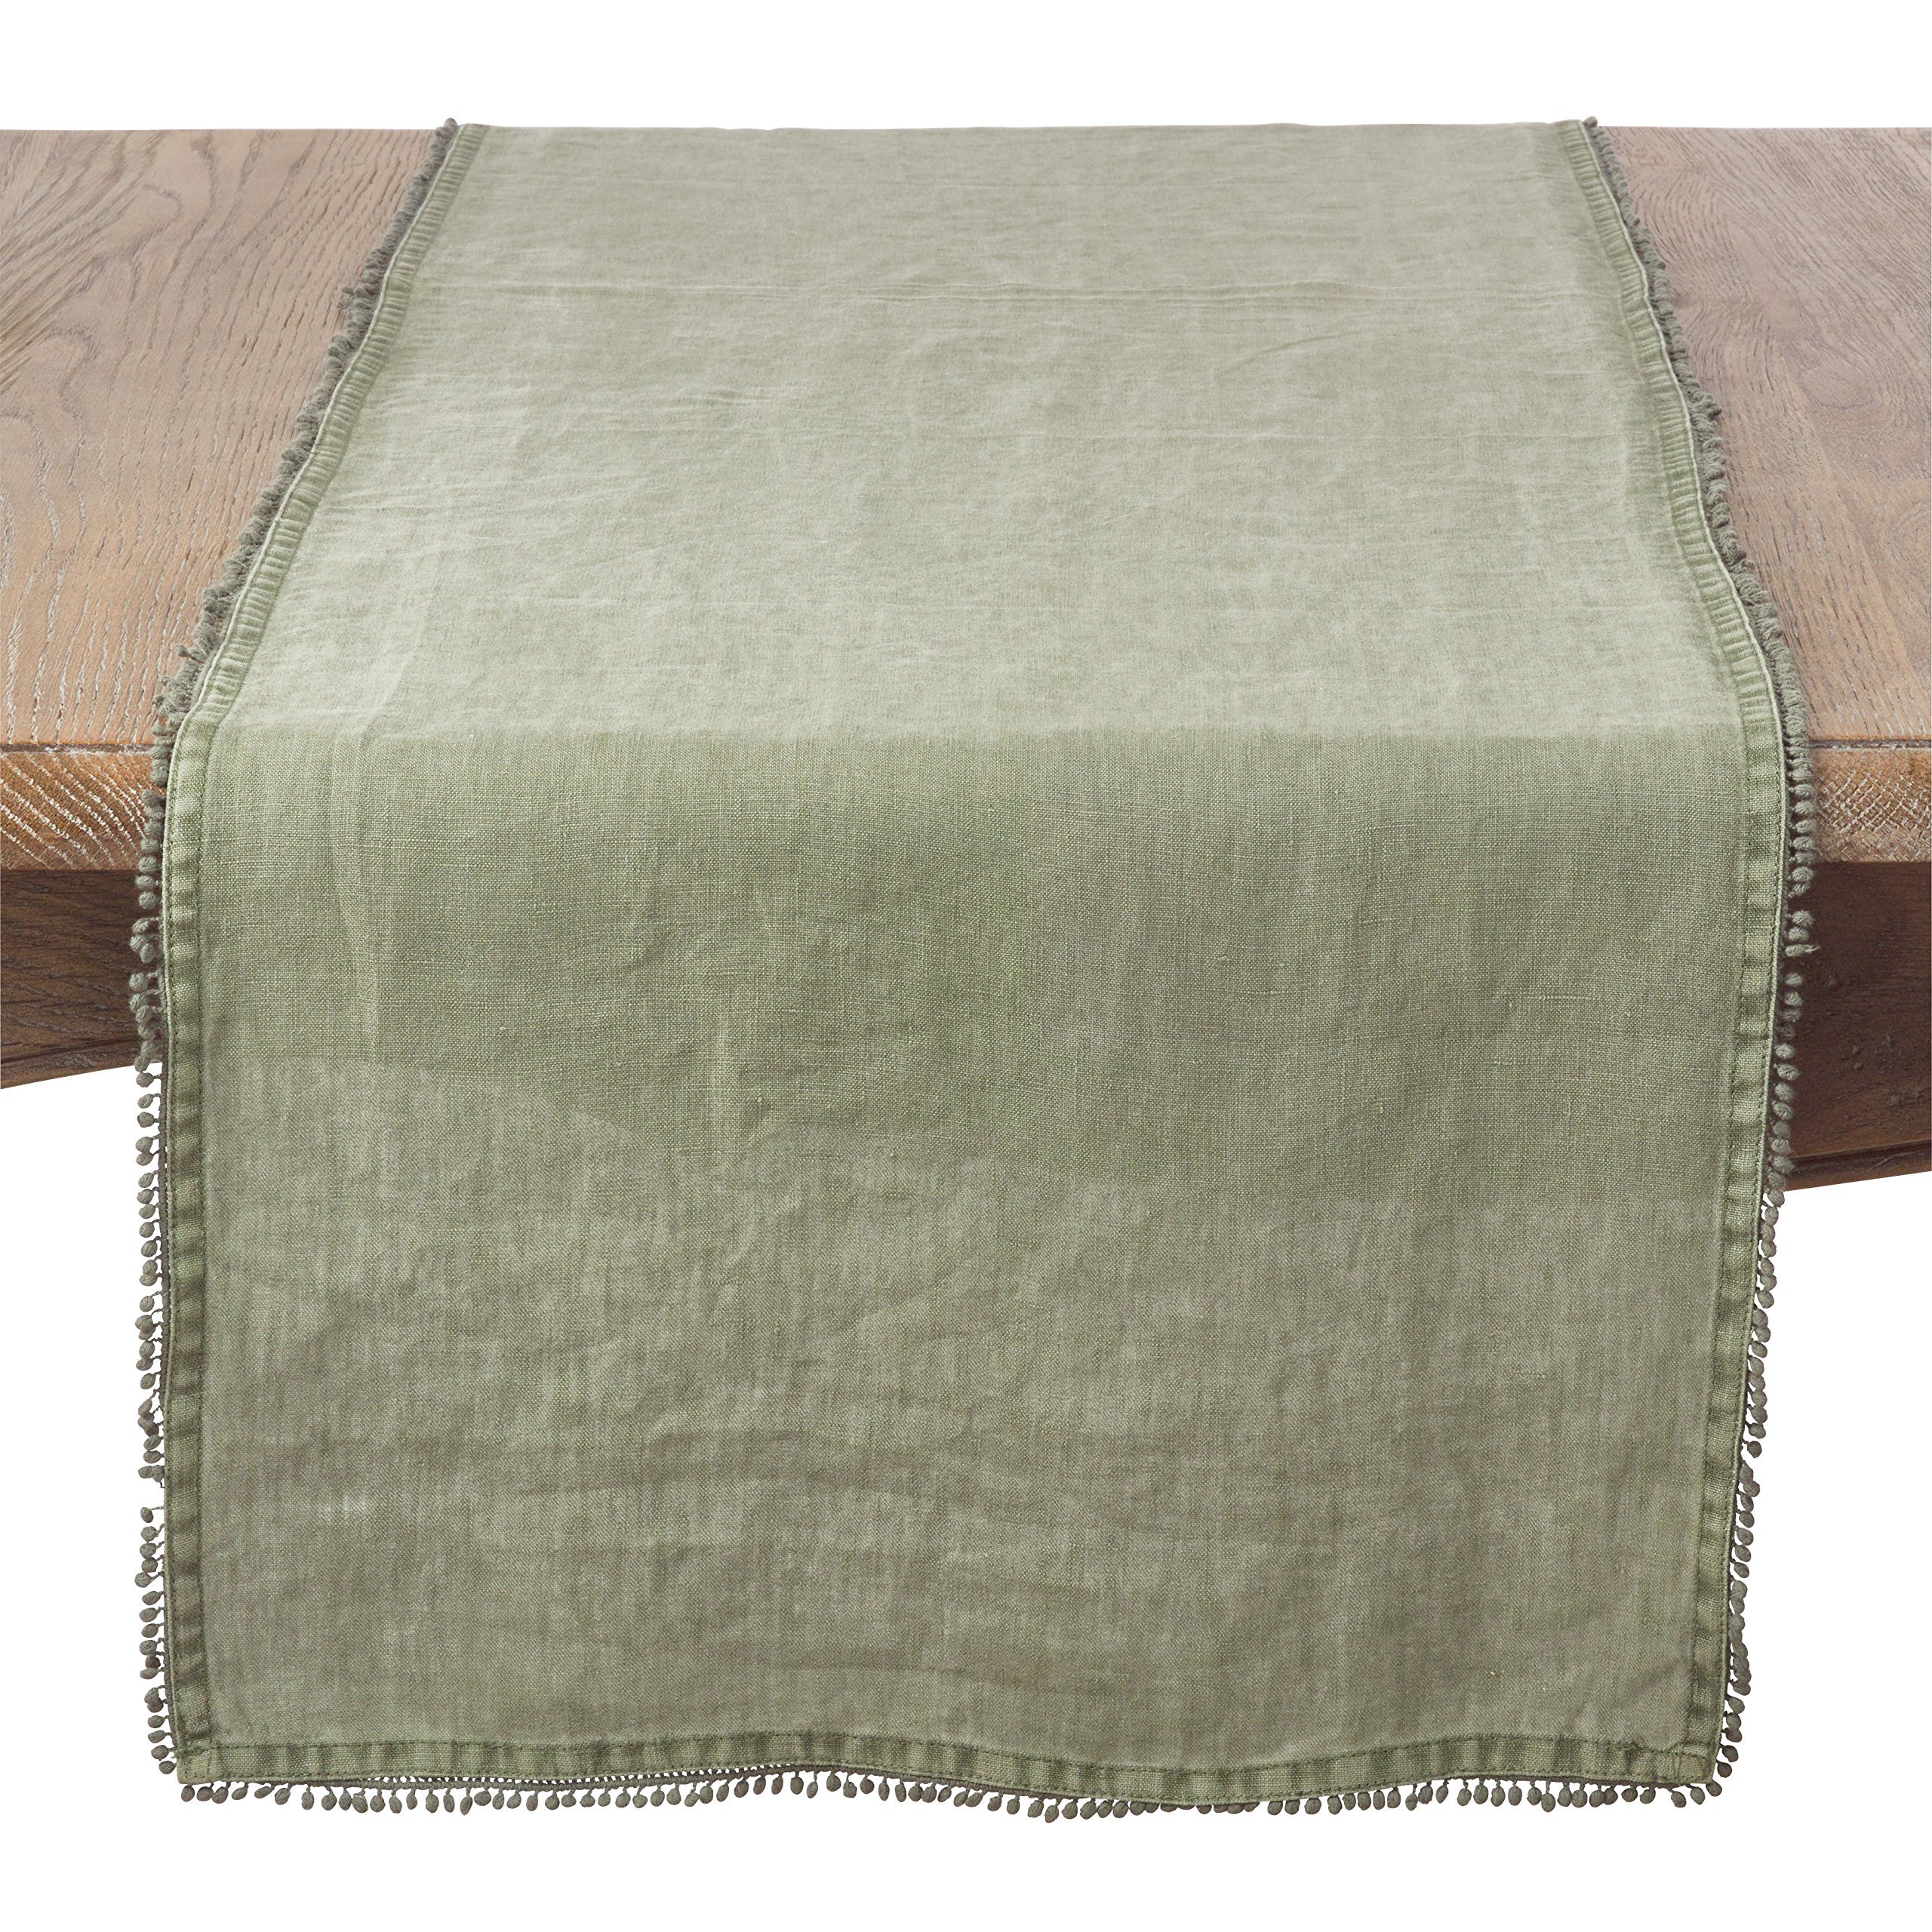 SARO LIFESTYLE Pomponin Collection 100% Linen Table Runner with Pompom Edges, 16'' x 72'', Olive